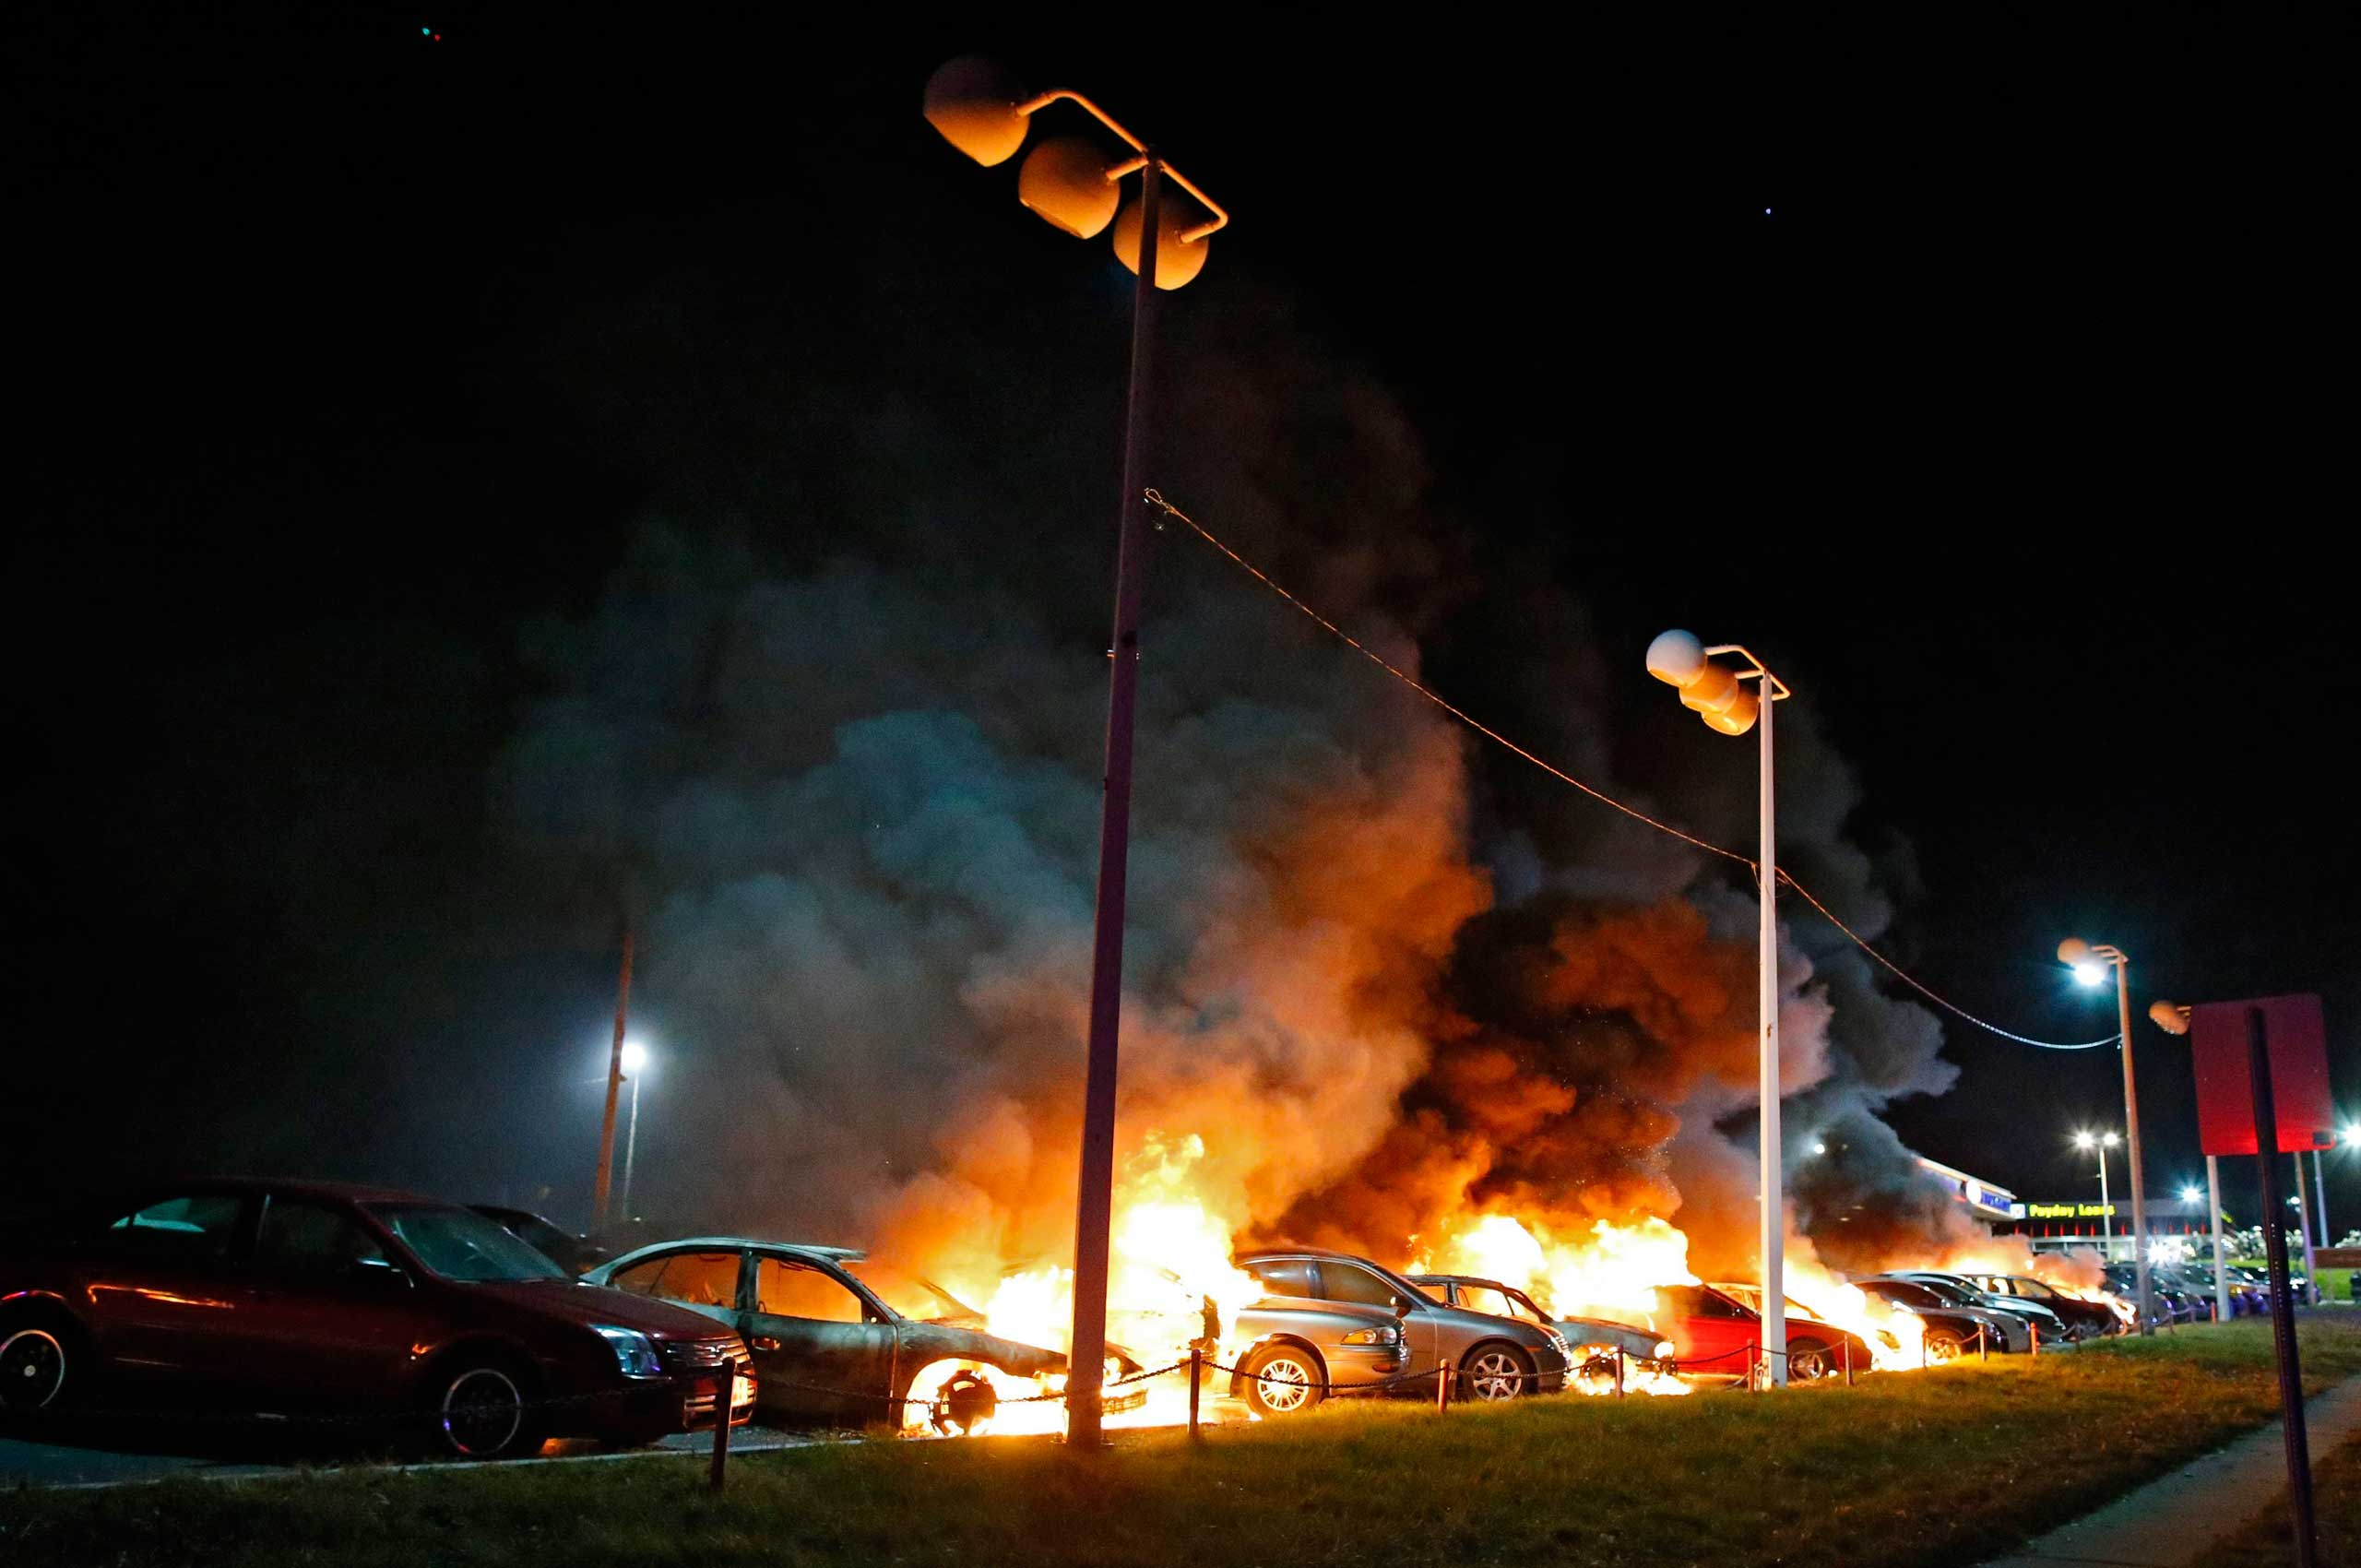 Cars burn at a car dealership as demonstrators protest the Grand Jury decision not to indict police officer Darren Wilson over the shooting death of Michael Brown in Ferguson, Mo. on No.v 24, 2014.